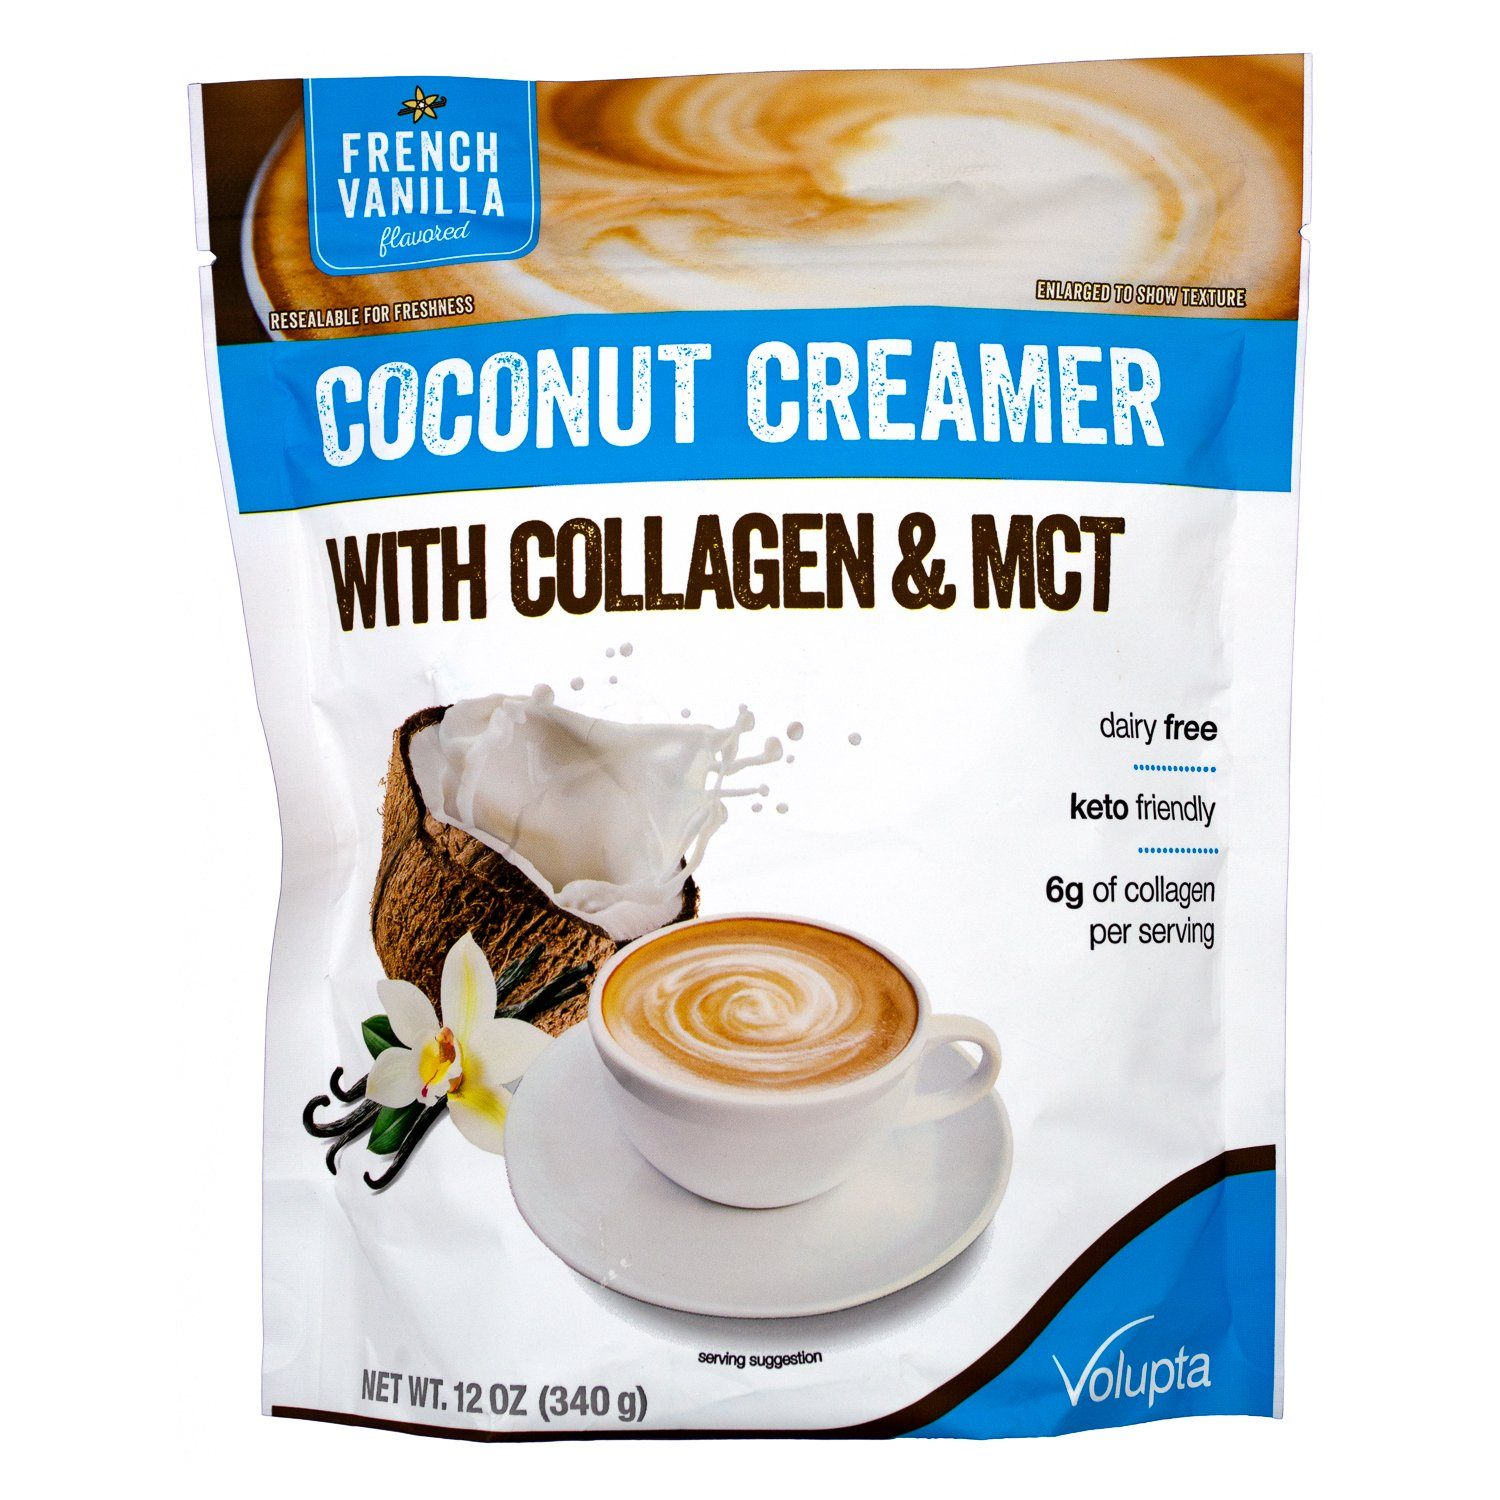 Volupta French Vanilla Coconut Creamer With Collagen & MCT, 12 Ounce Volupta